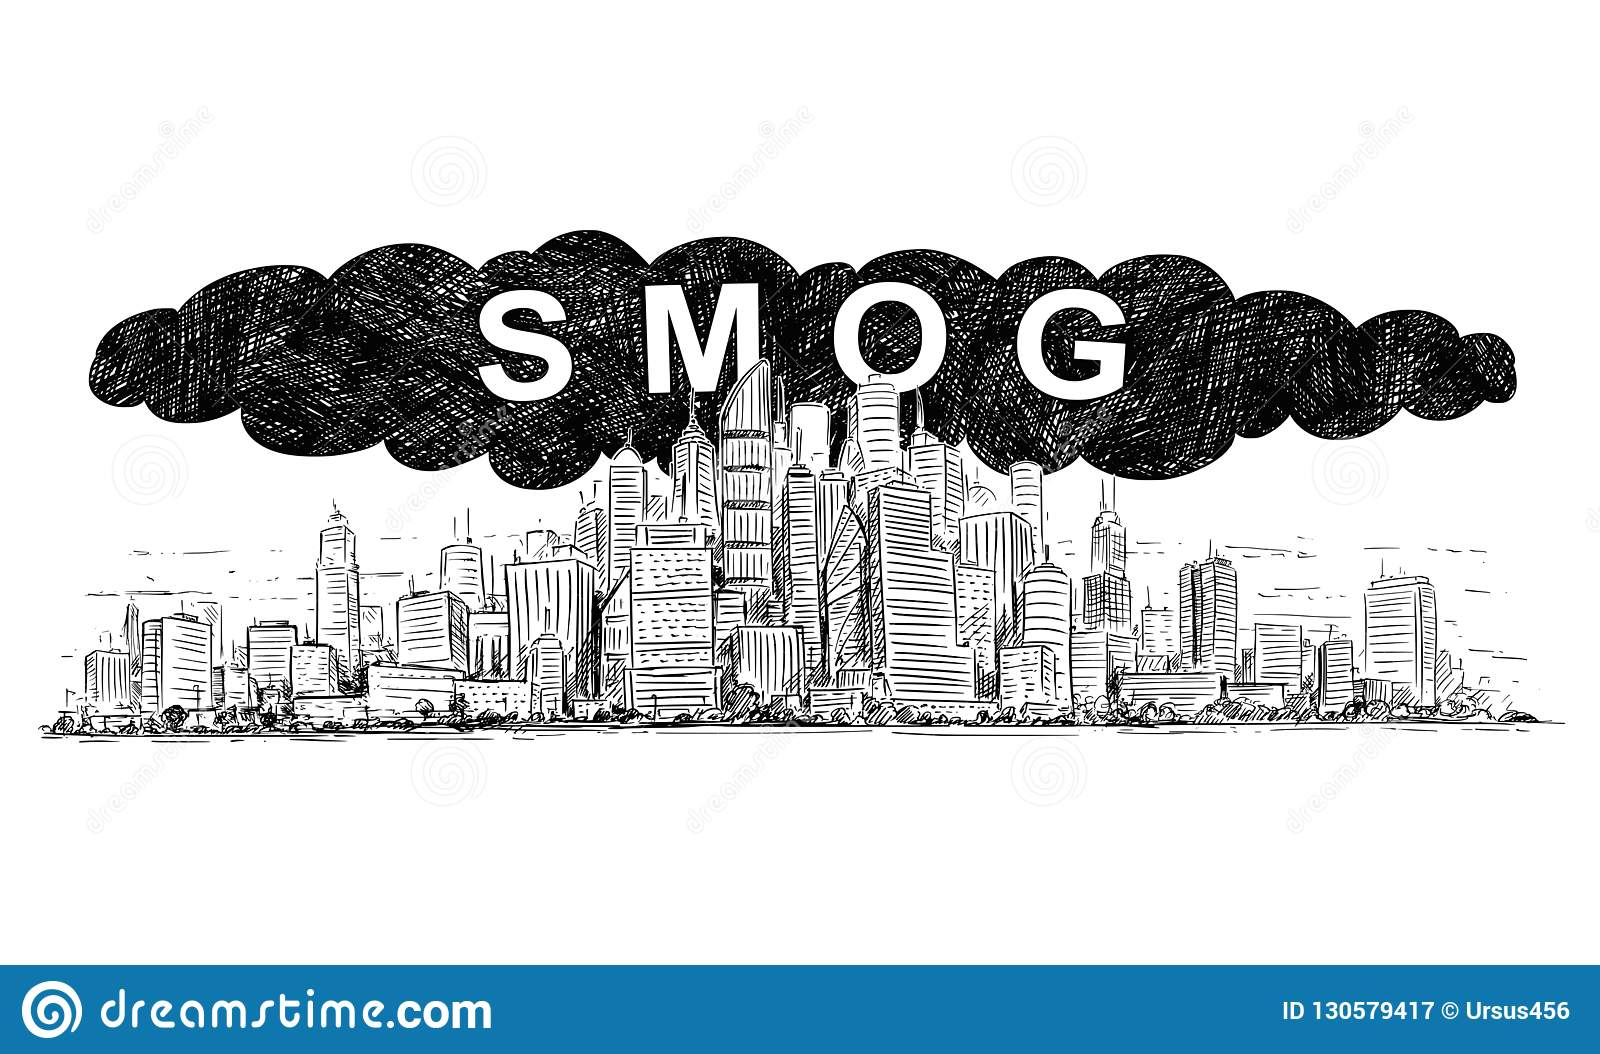 Vector artistic drawing illustration of city covered by smog and air pollution